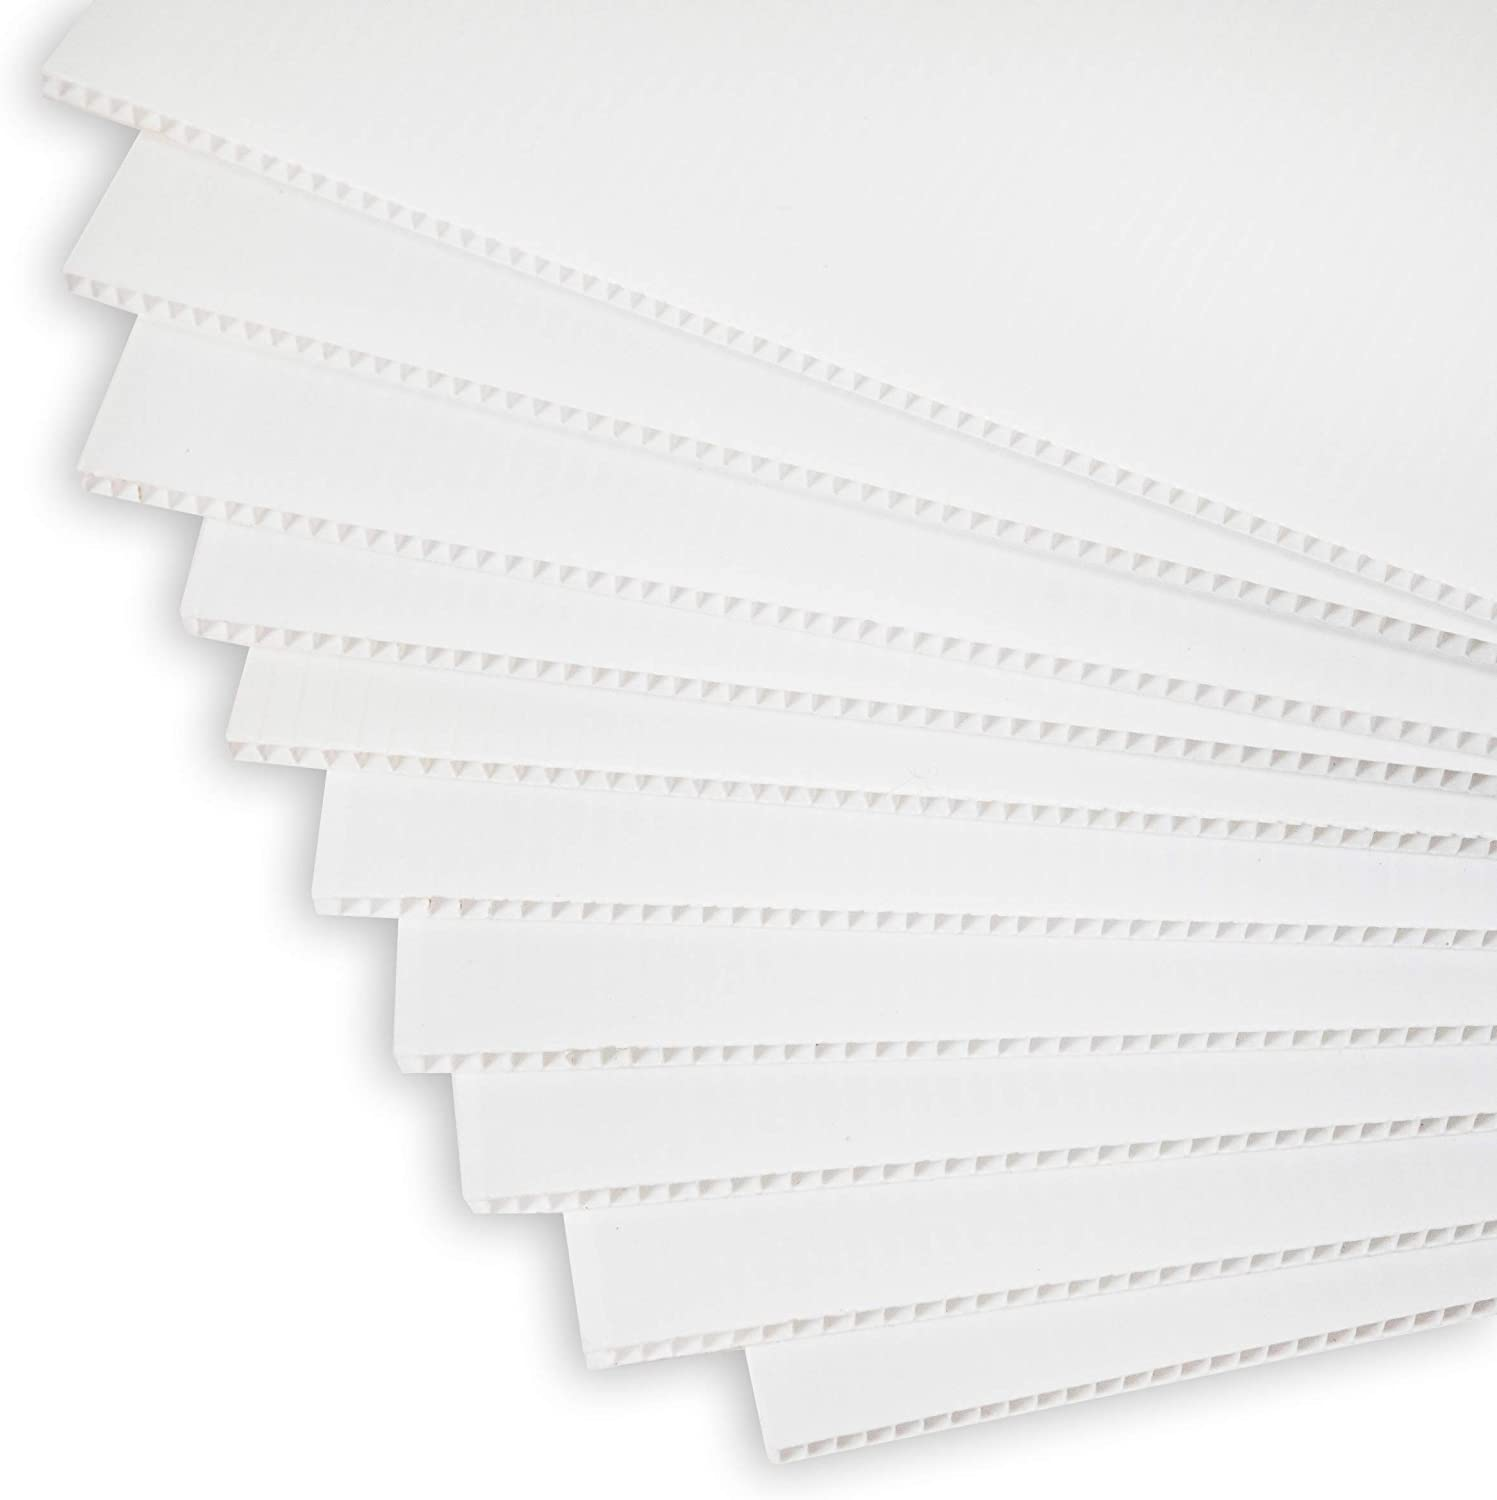 Corrugated Plastic Sheets   17in x 13in   10 Pack   Blank Coroplast Poster Board Signs for Offices, Classrooms, Yard and Garage Sales, Realtor Open Houses, and Custom Birthday, and Graduation Messages